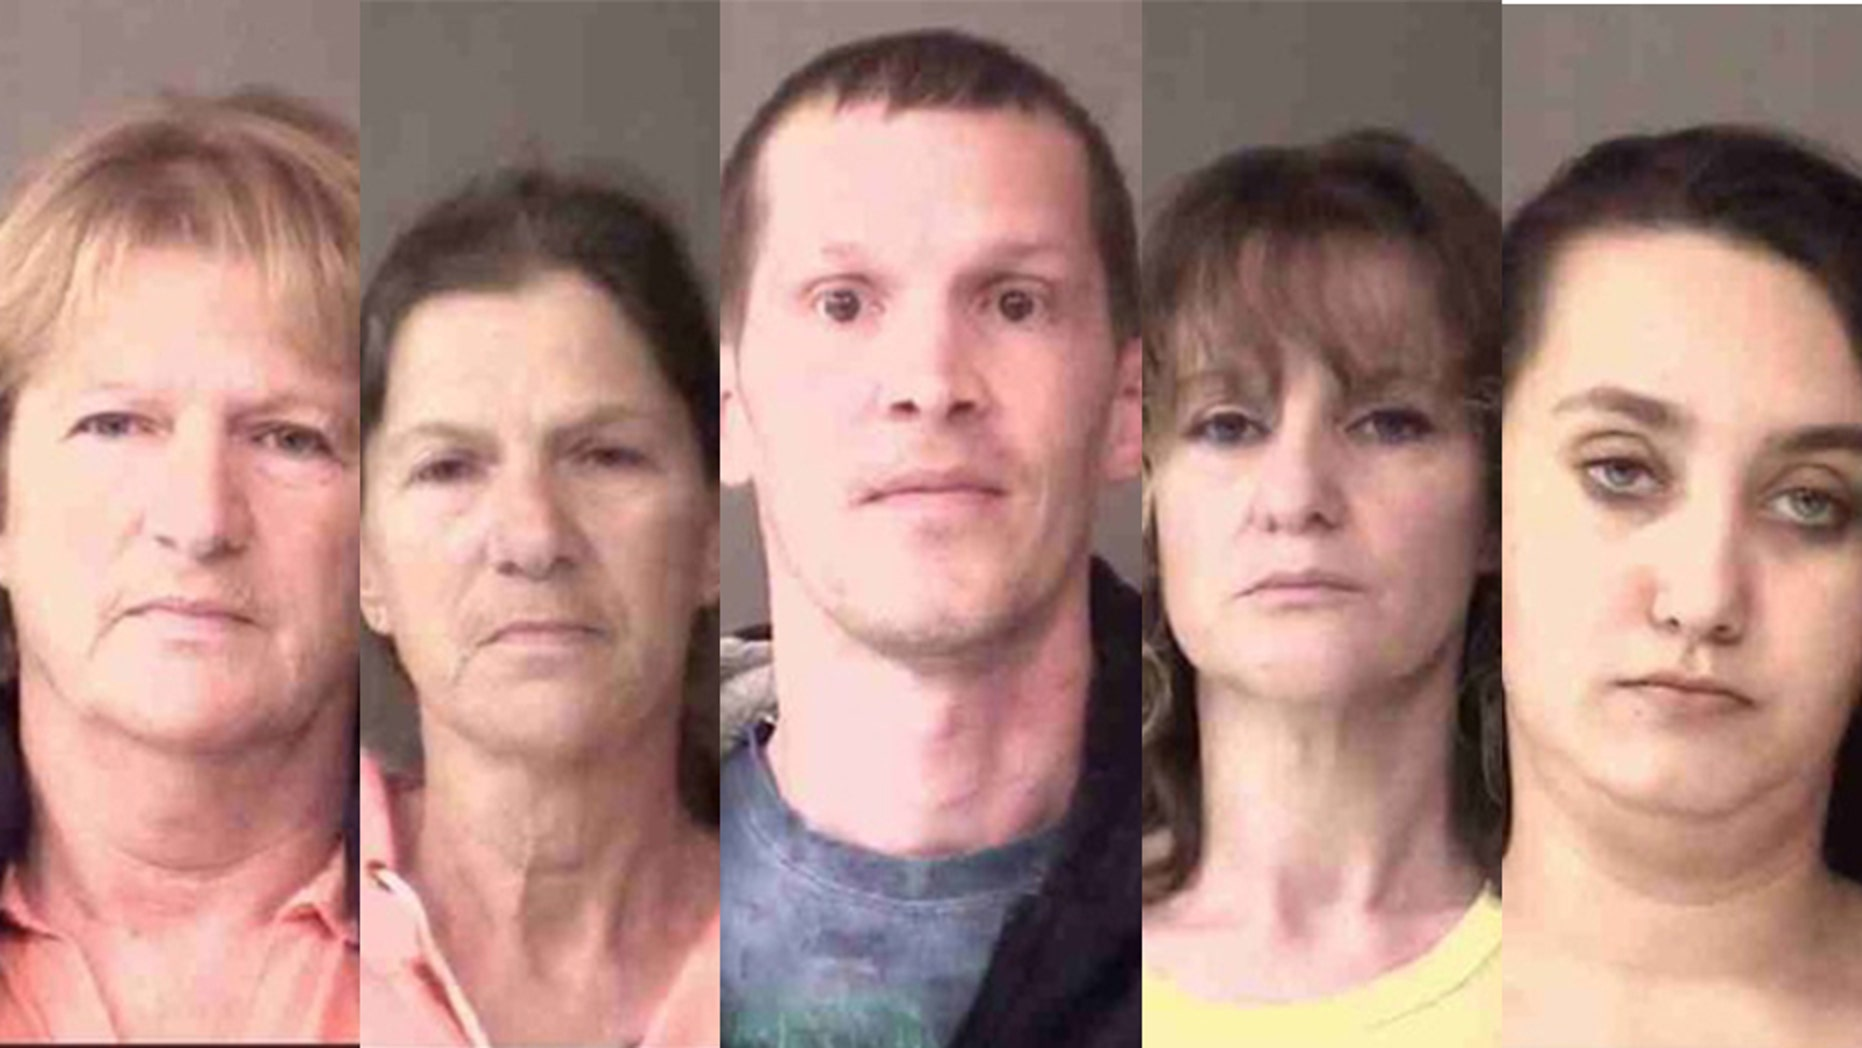 Police in Indiana charged, from left, Annette Priestly, Fayette Robinette, Travis Tillotson, Jammy Stacy and Rune Springer with felony neglect of a dependent after a boy was found injured and severely malnourished.